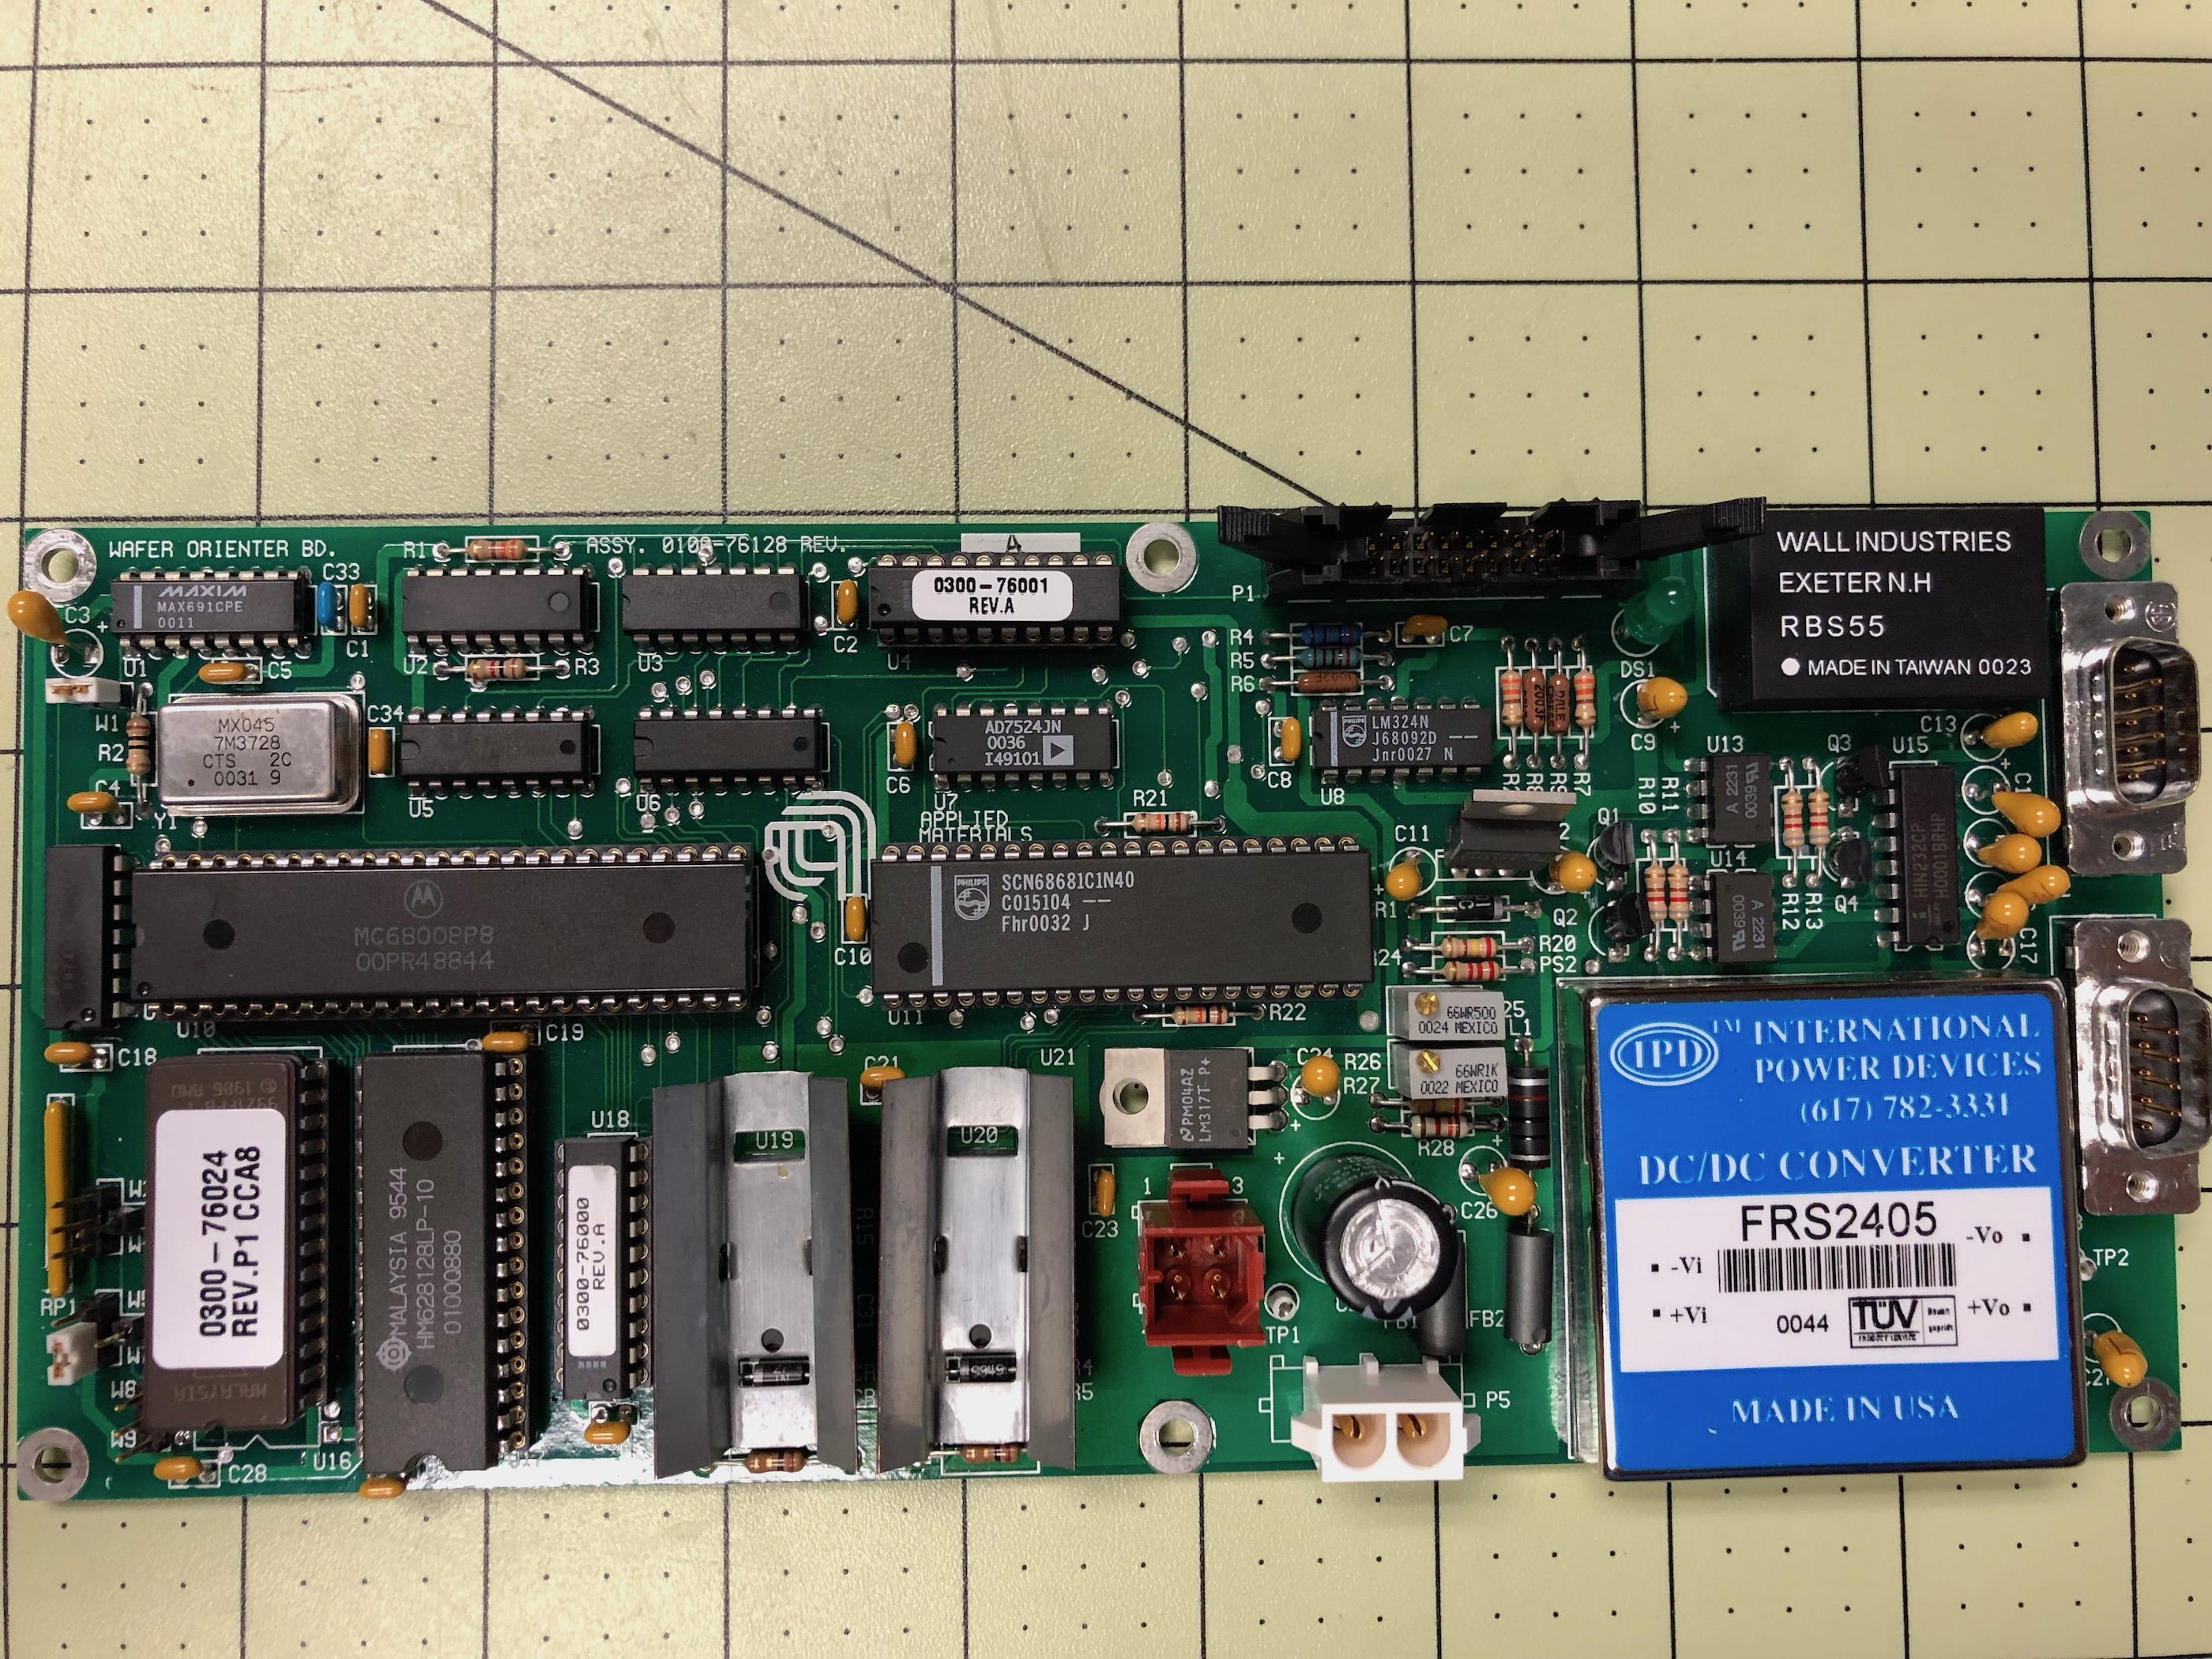 PCB Assy, wafer orienter